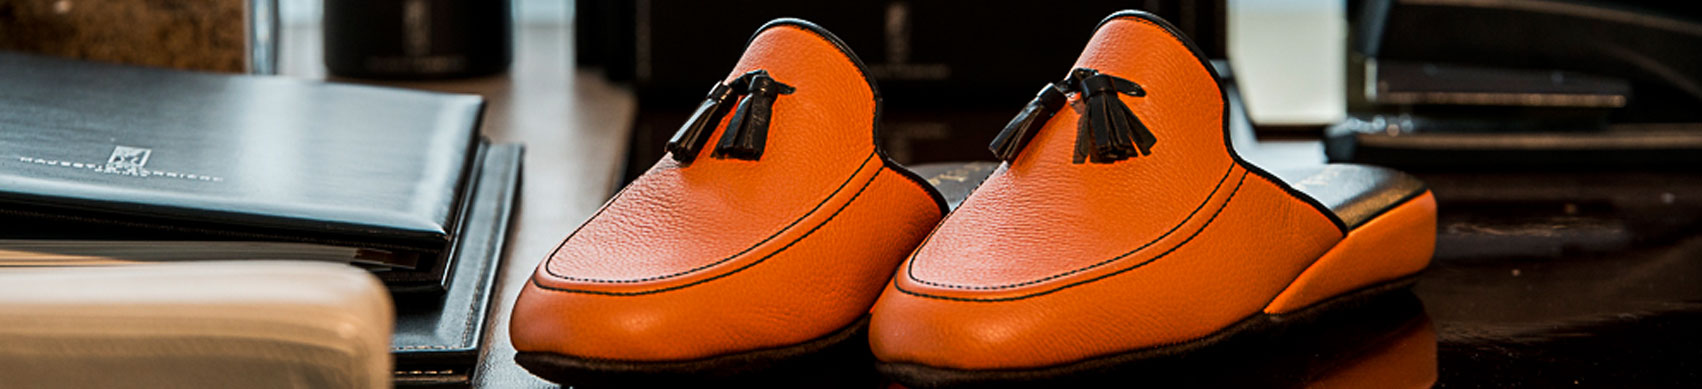 Slippers for Men - All men deserve high quality slippers!